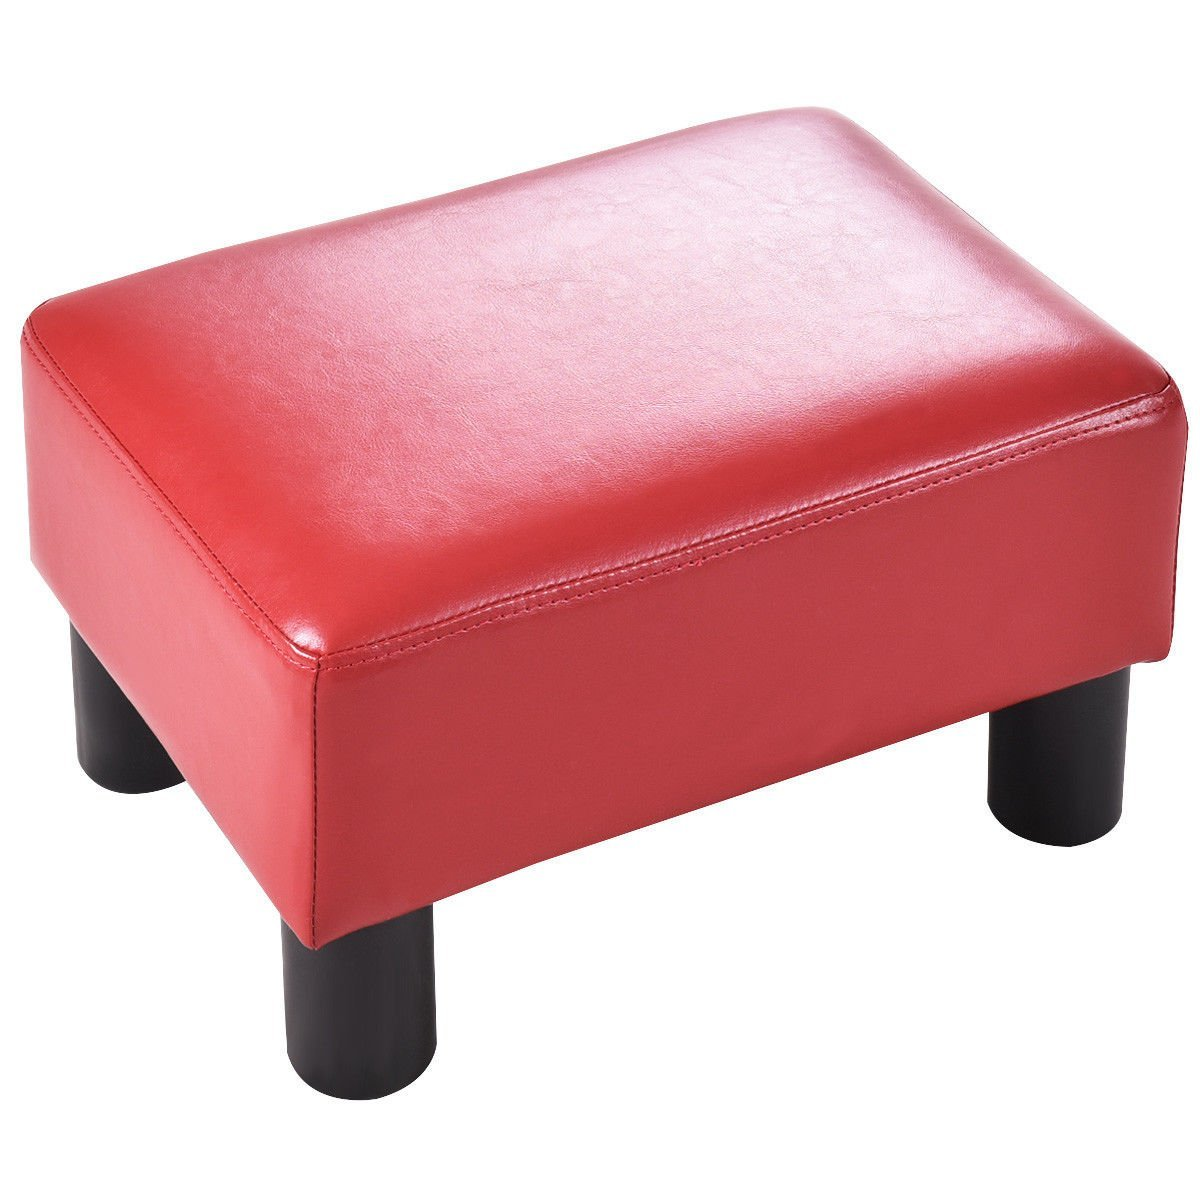 Giantex PU Leather Footstool Small Ottoman Rectangular Seat Stool with Plastic Wood Legs, Red